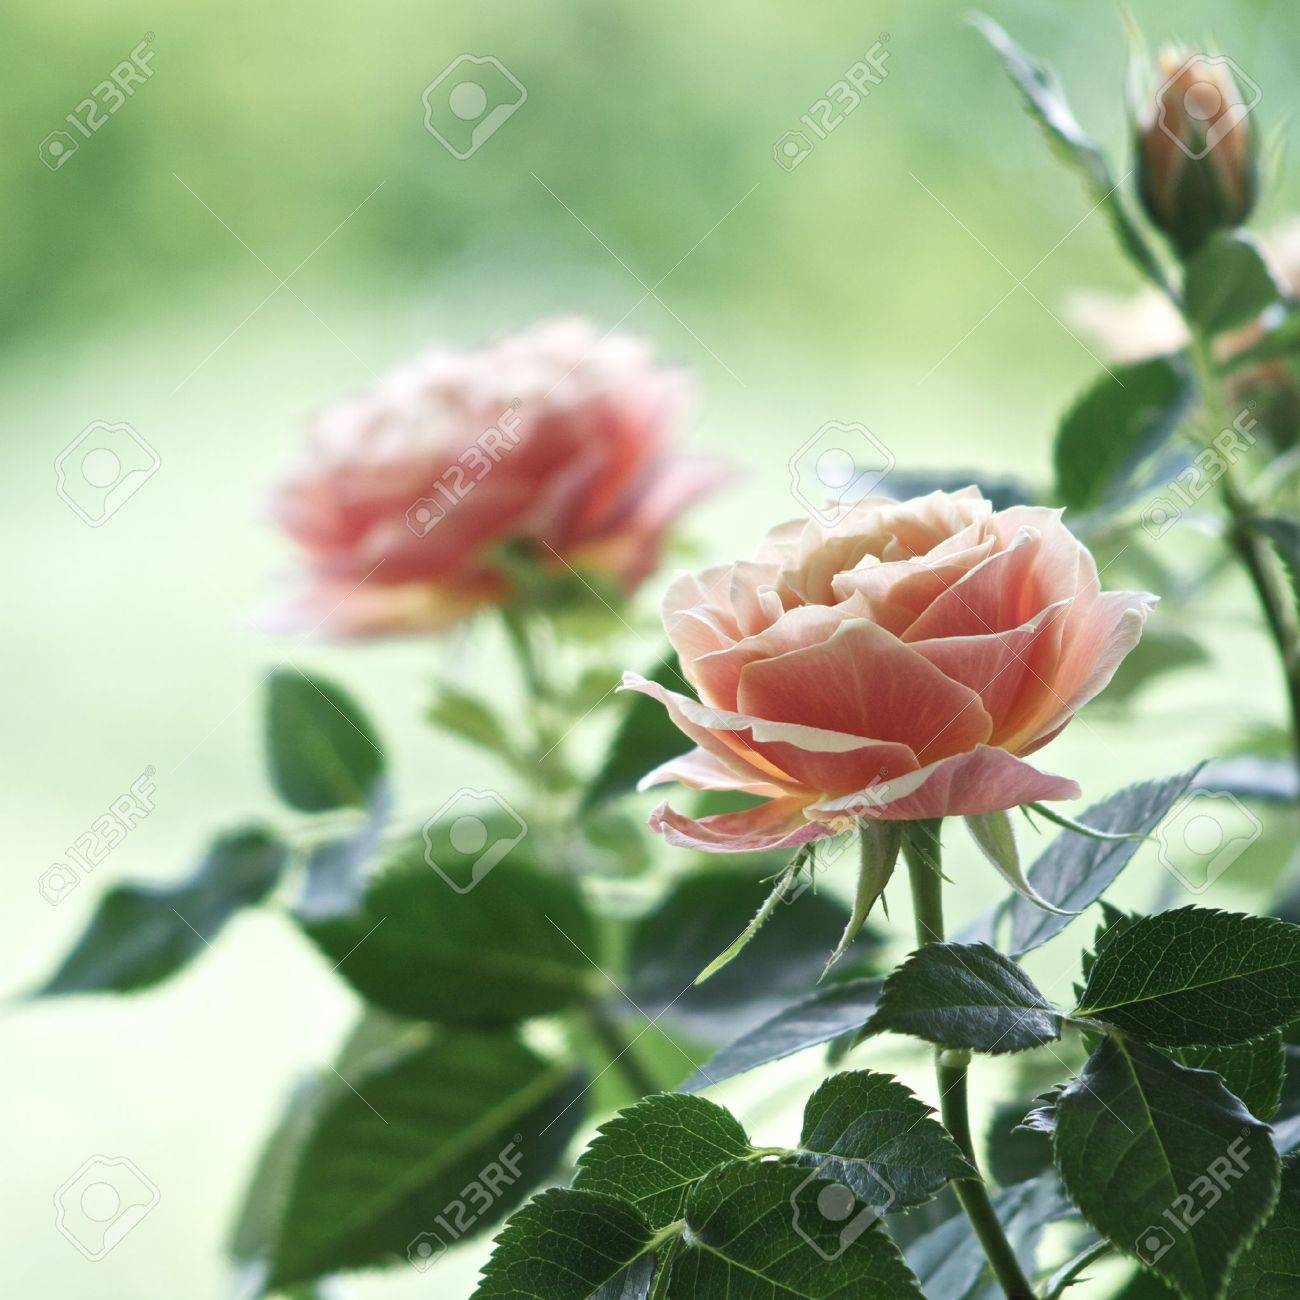 Roses on a bush in a garden. Shallow DOF Stock Photo - 8999948